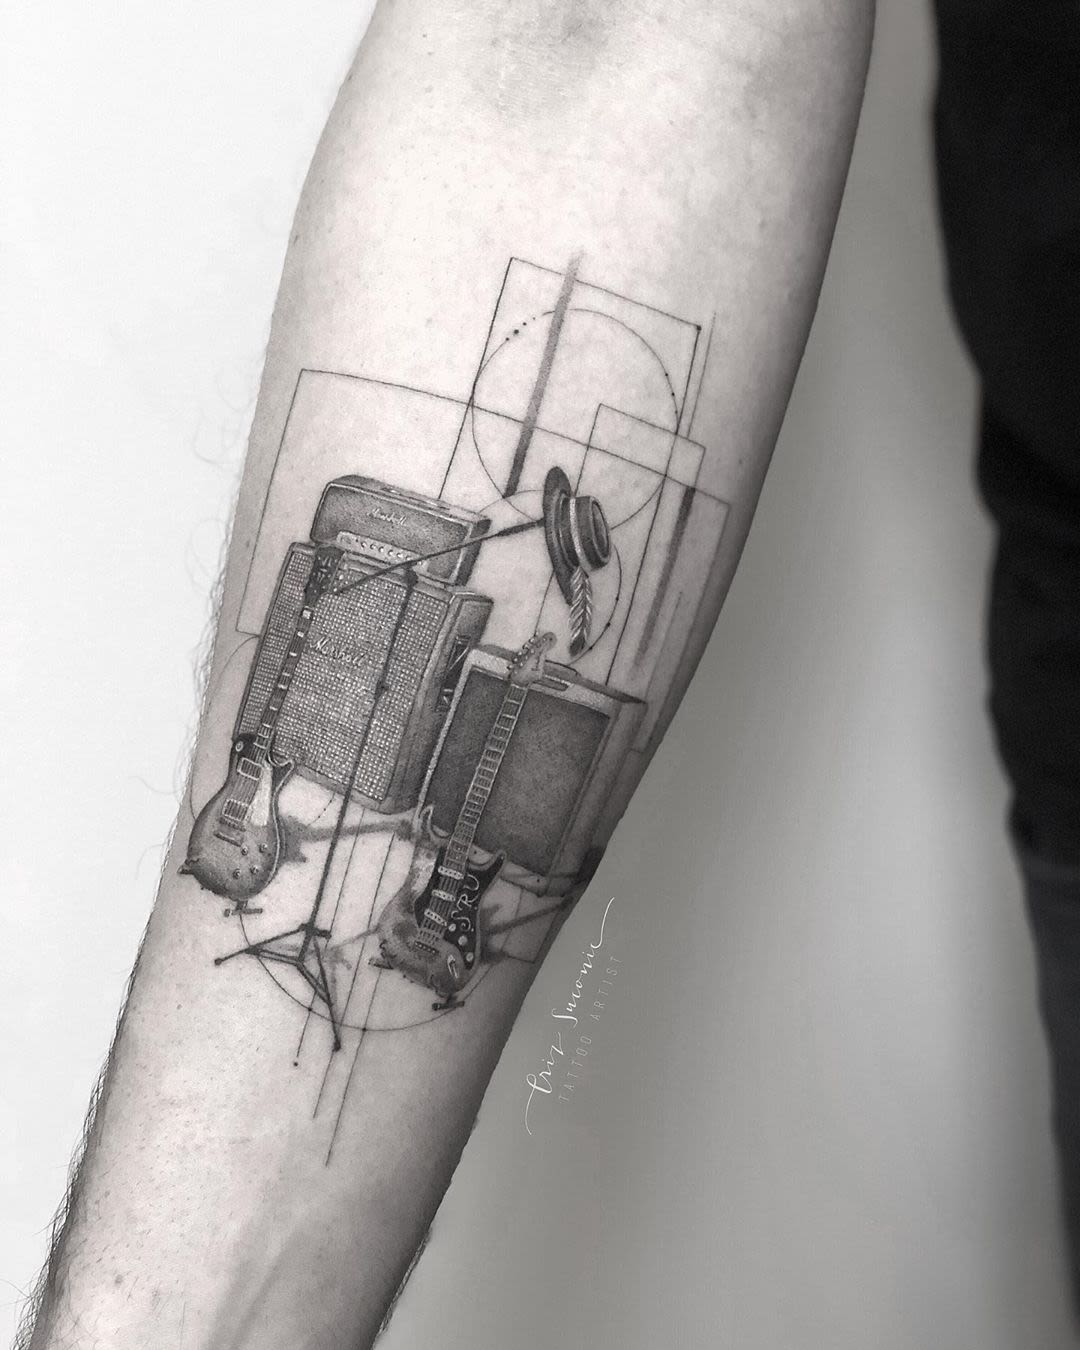 Tattoo of the instruments of a rock band